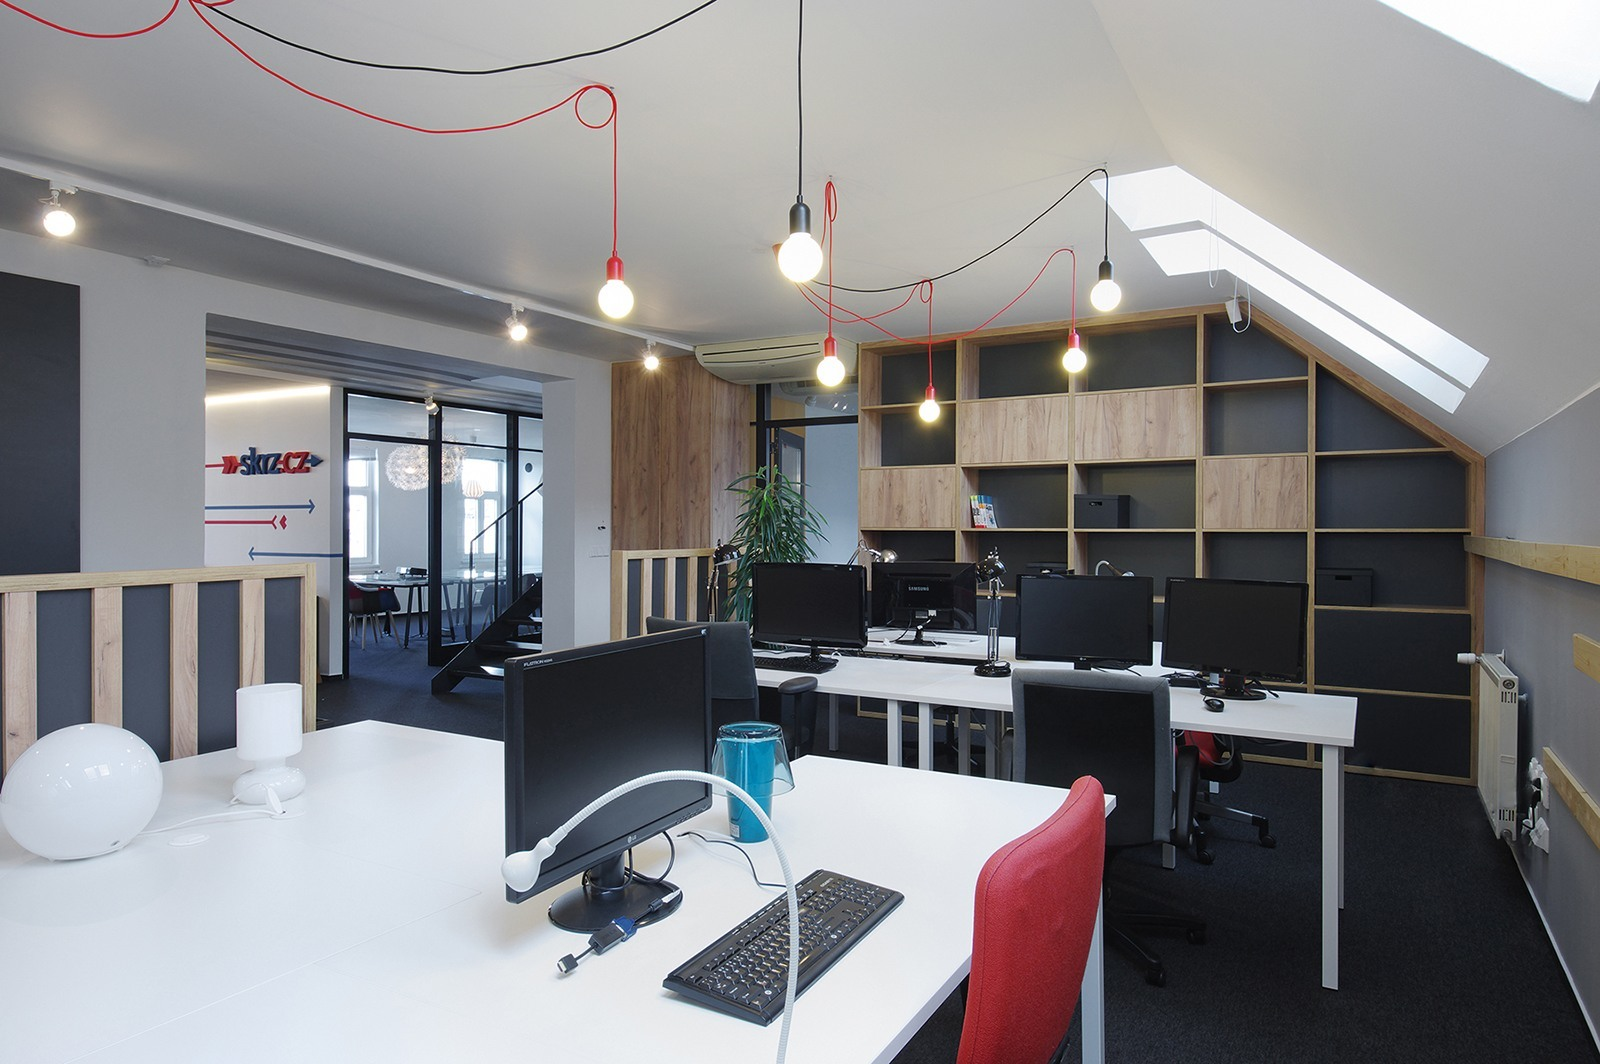 skrz-prague-office-4